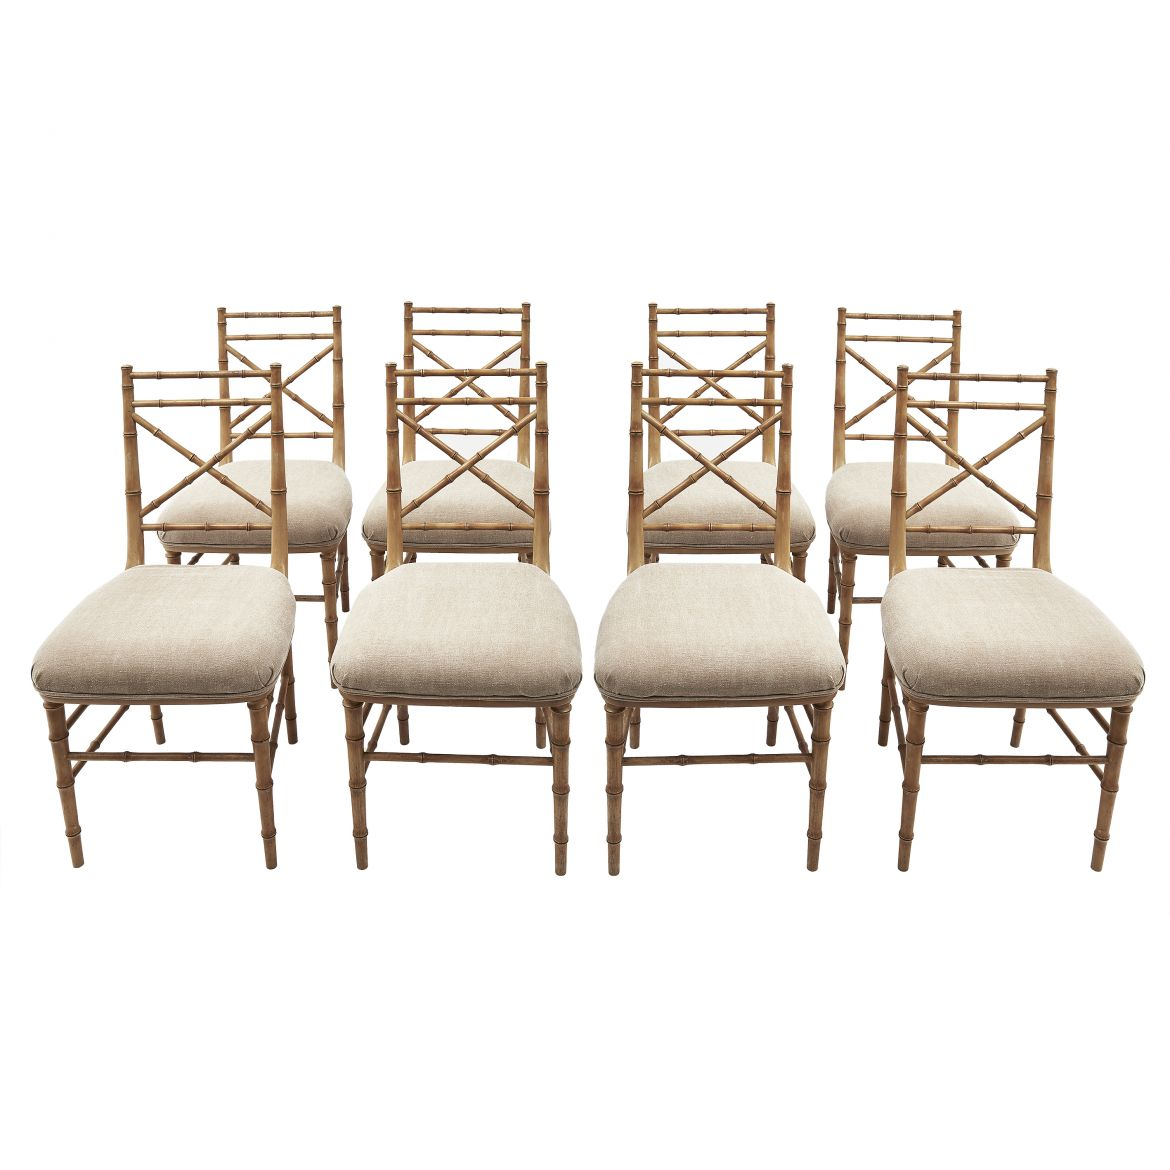 Eight Faux Bamboo Chairs